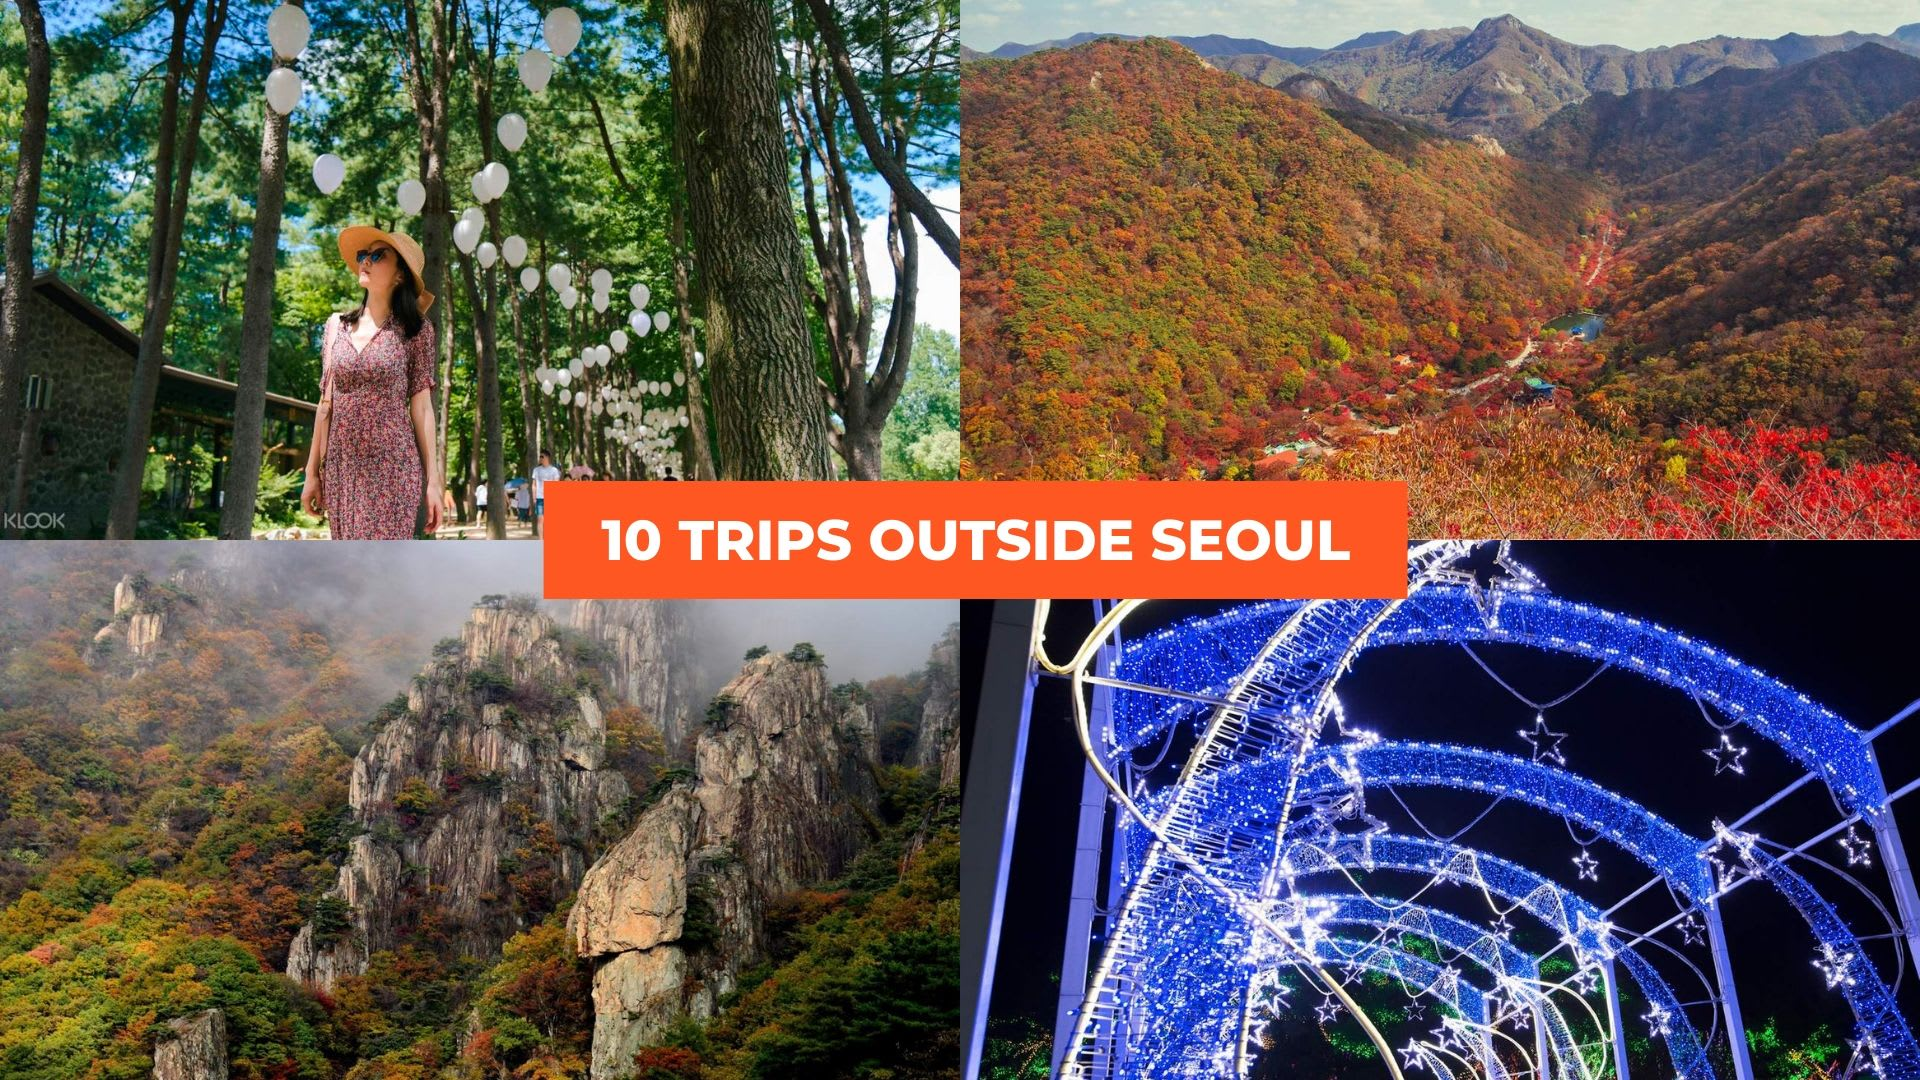 seoul day trips cover photo